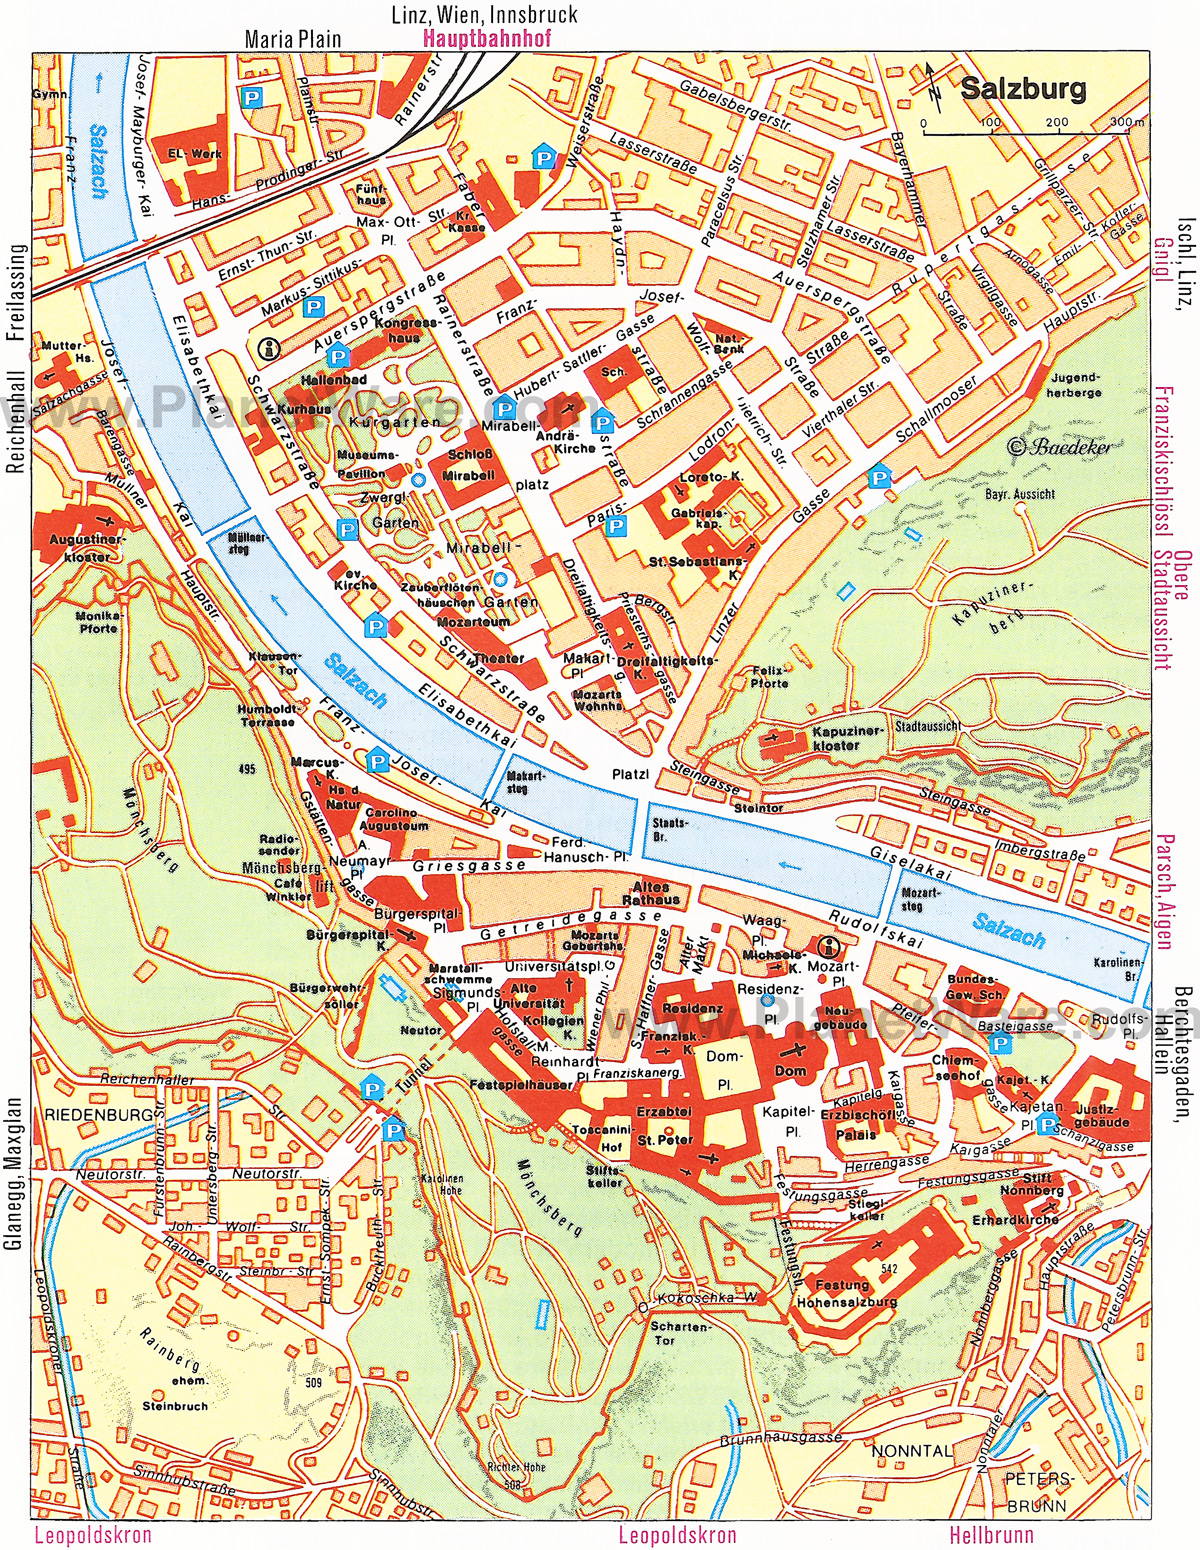 detailed tourist map of salzburg city